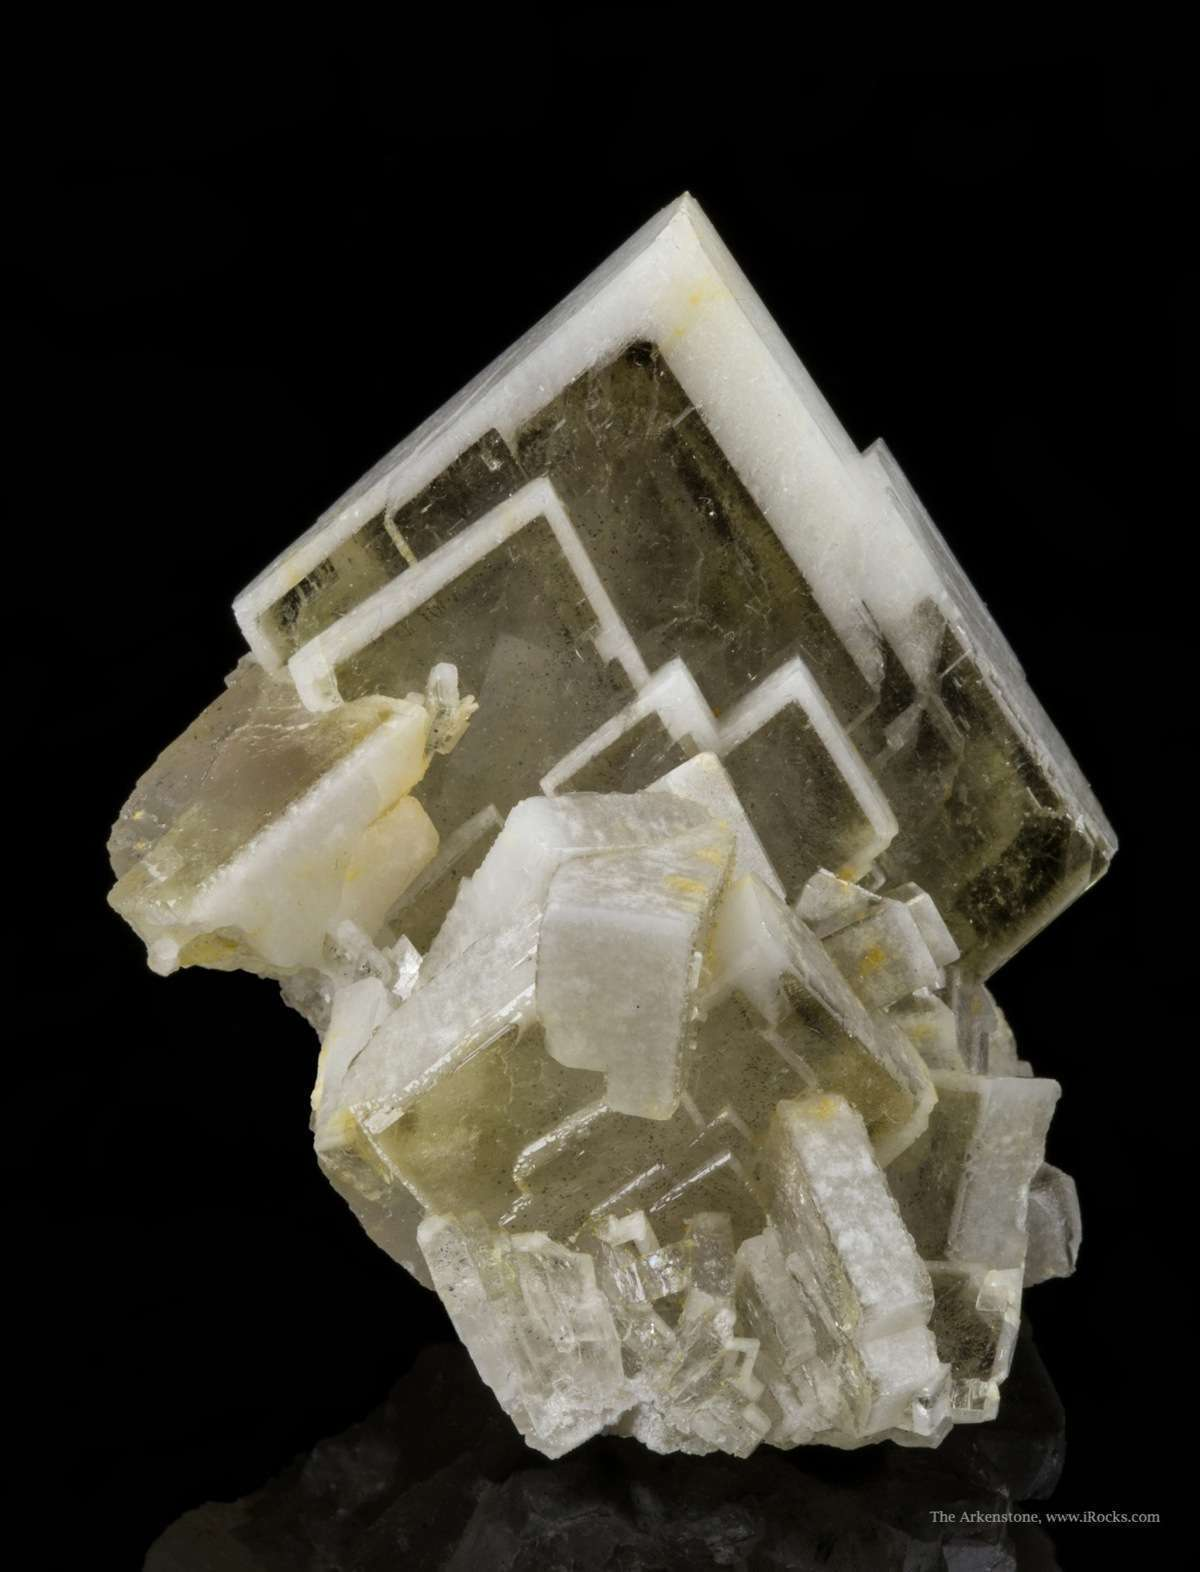 More unusual simply core tabular spear point bicolored Baryte glassy